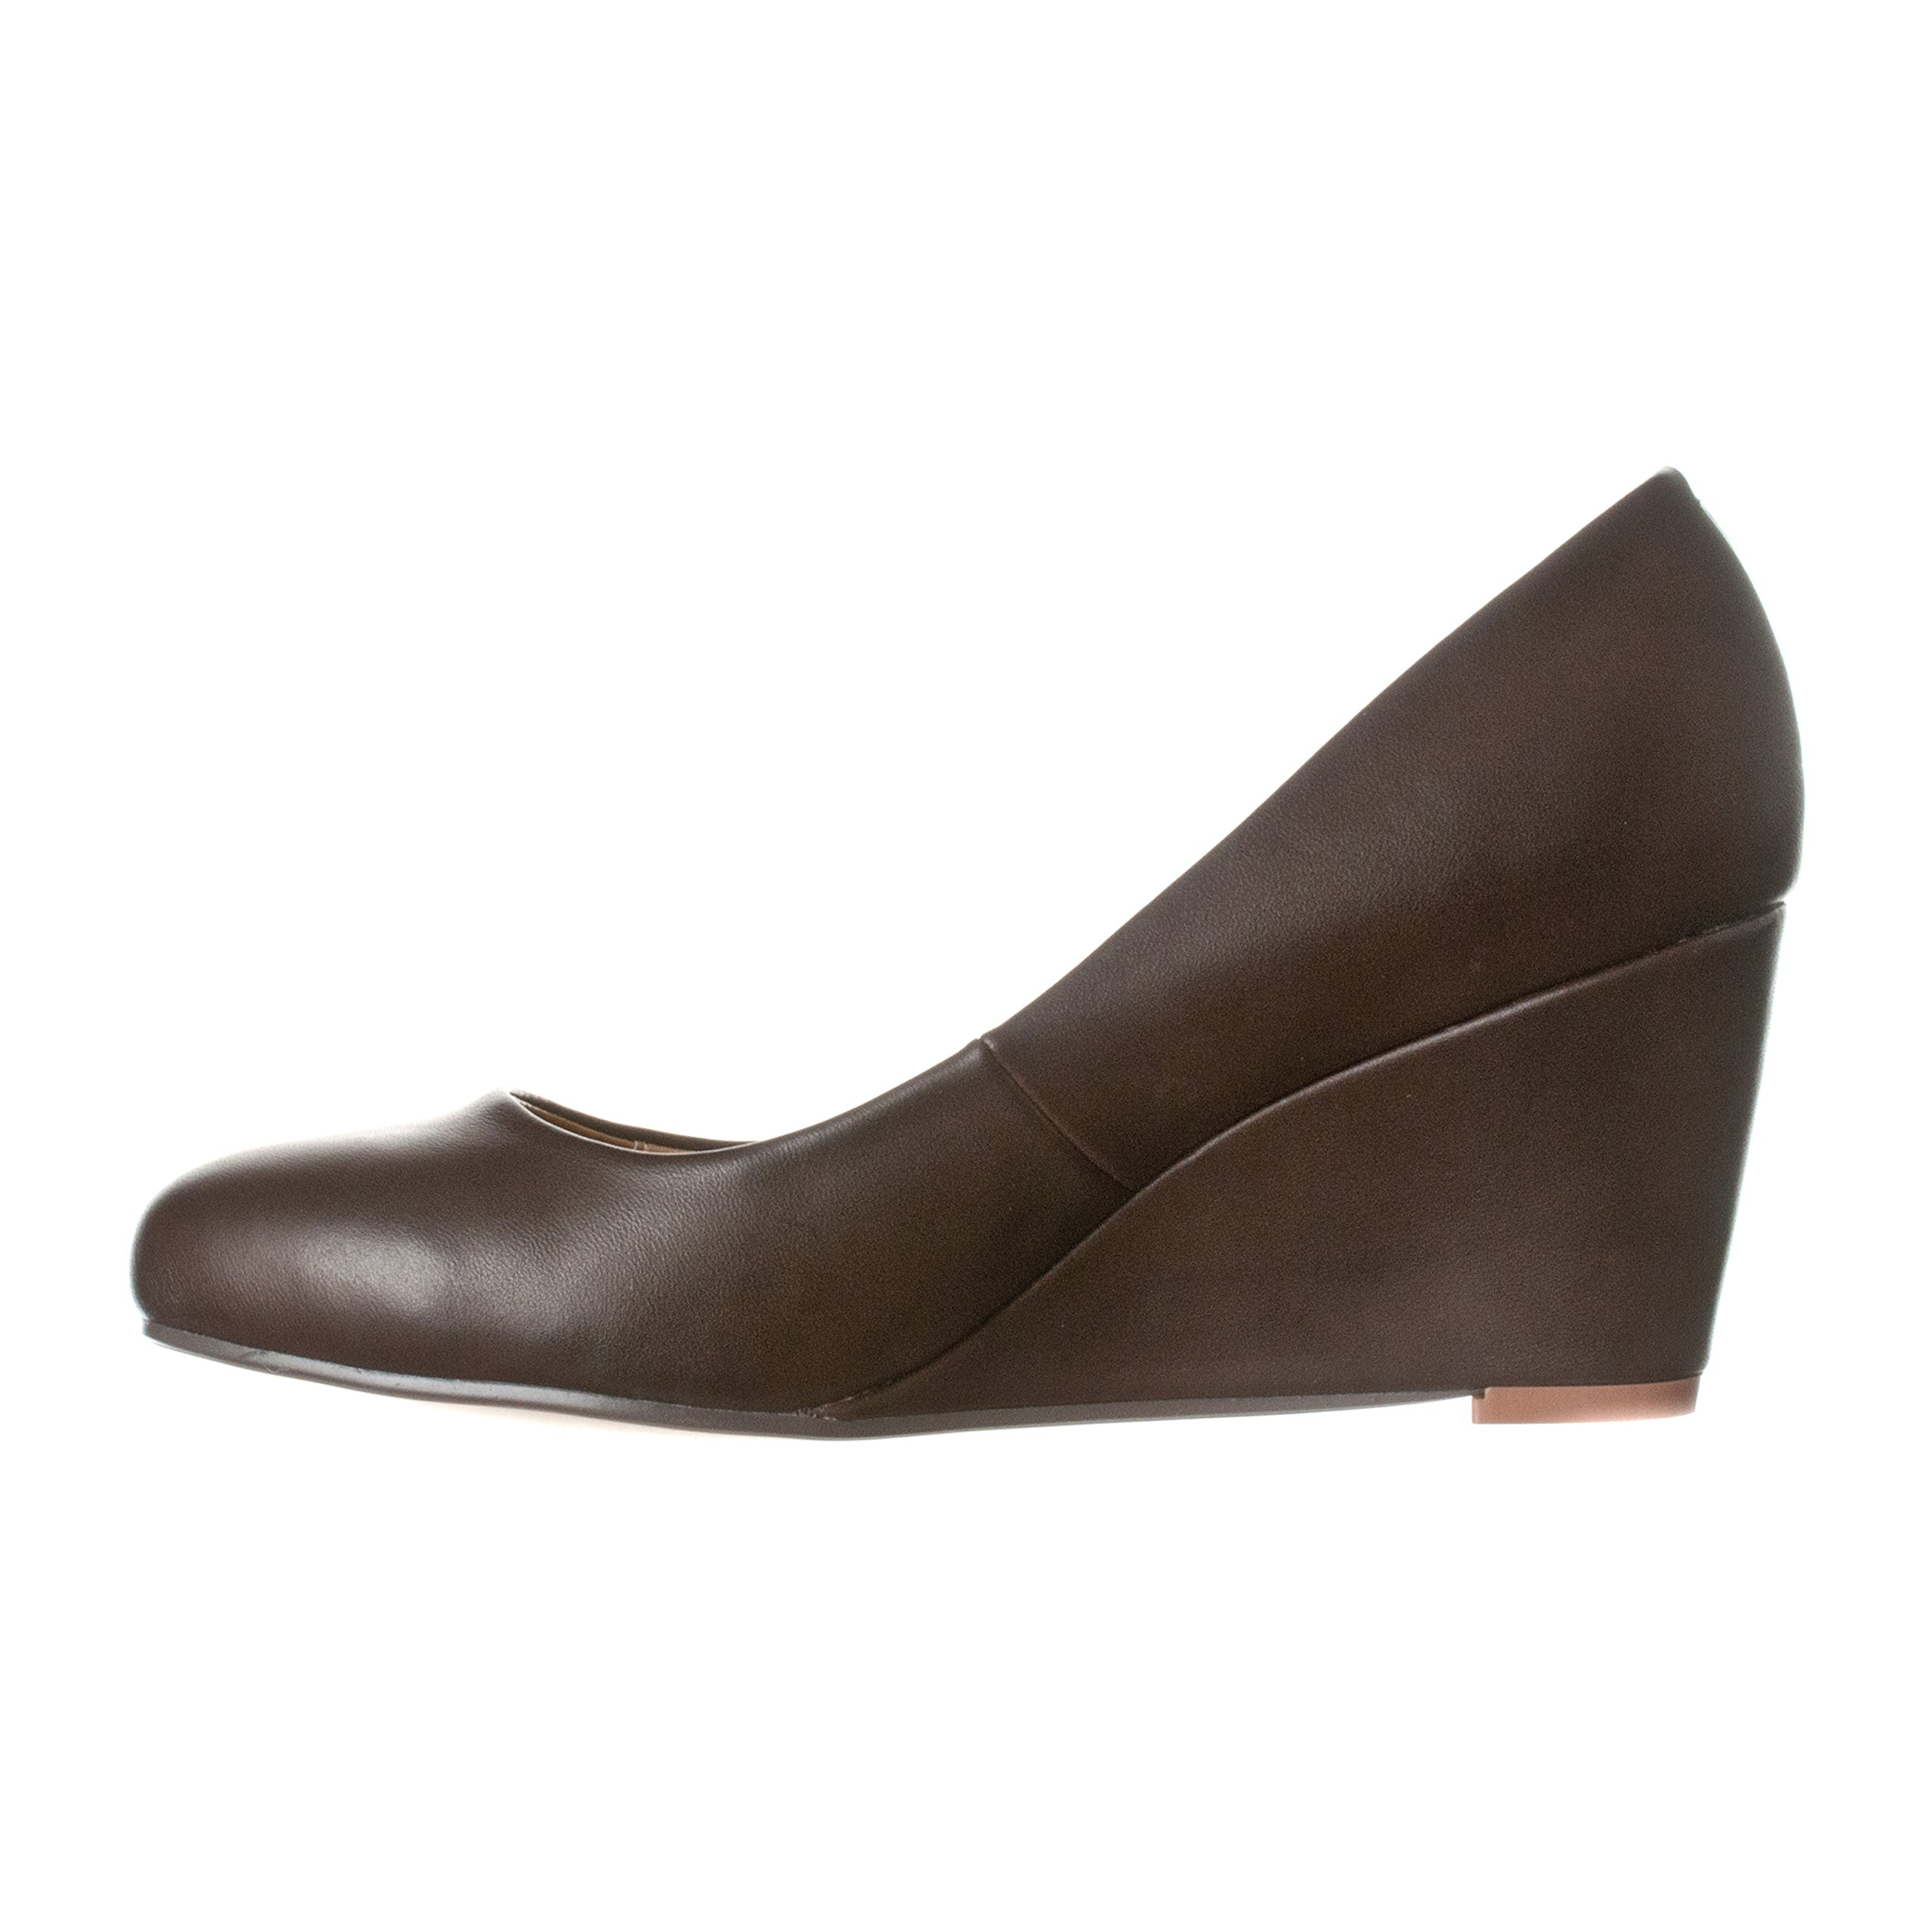 Riverberry Women's Leah Mid Heel Round Toe Wedge Pumps, Coffee PU, 9 by Riverberry (Image #2)